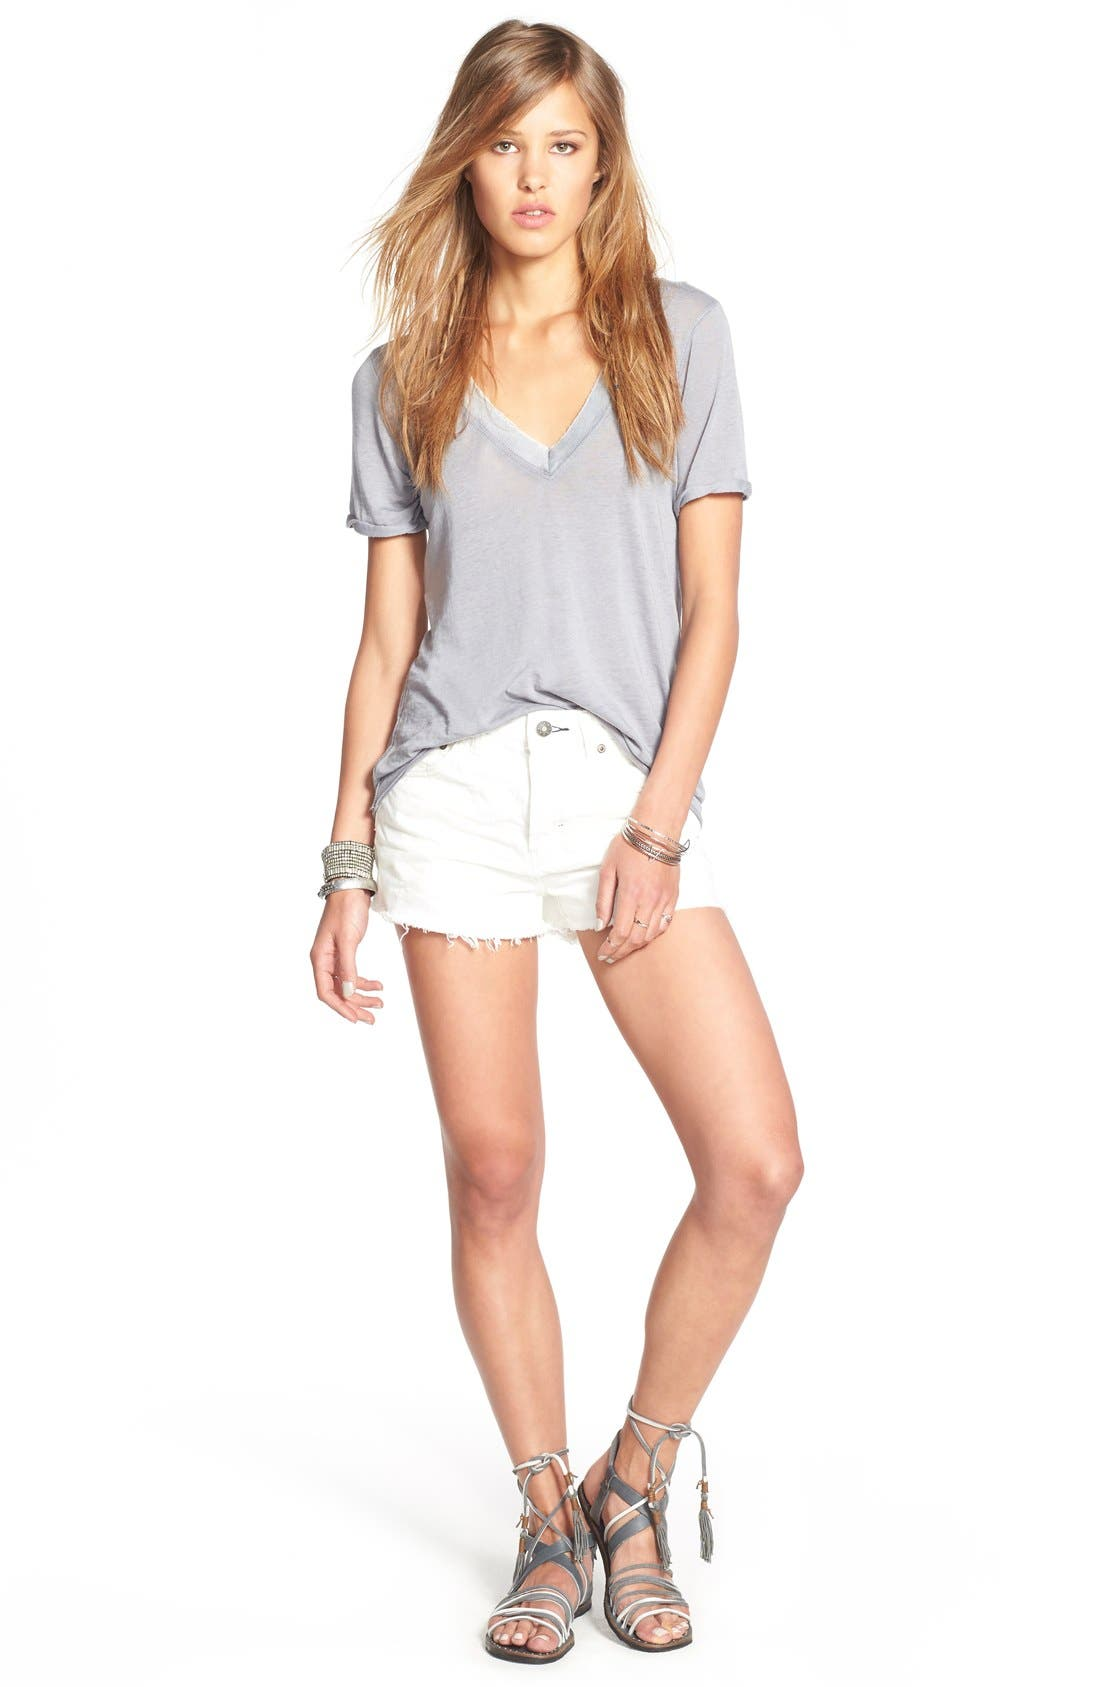 FREE PEOPLE, 'Pearls' Raw Edge V-Neck Tee, Alternate thumbnail 2, color, 030